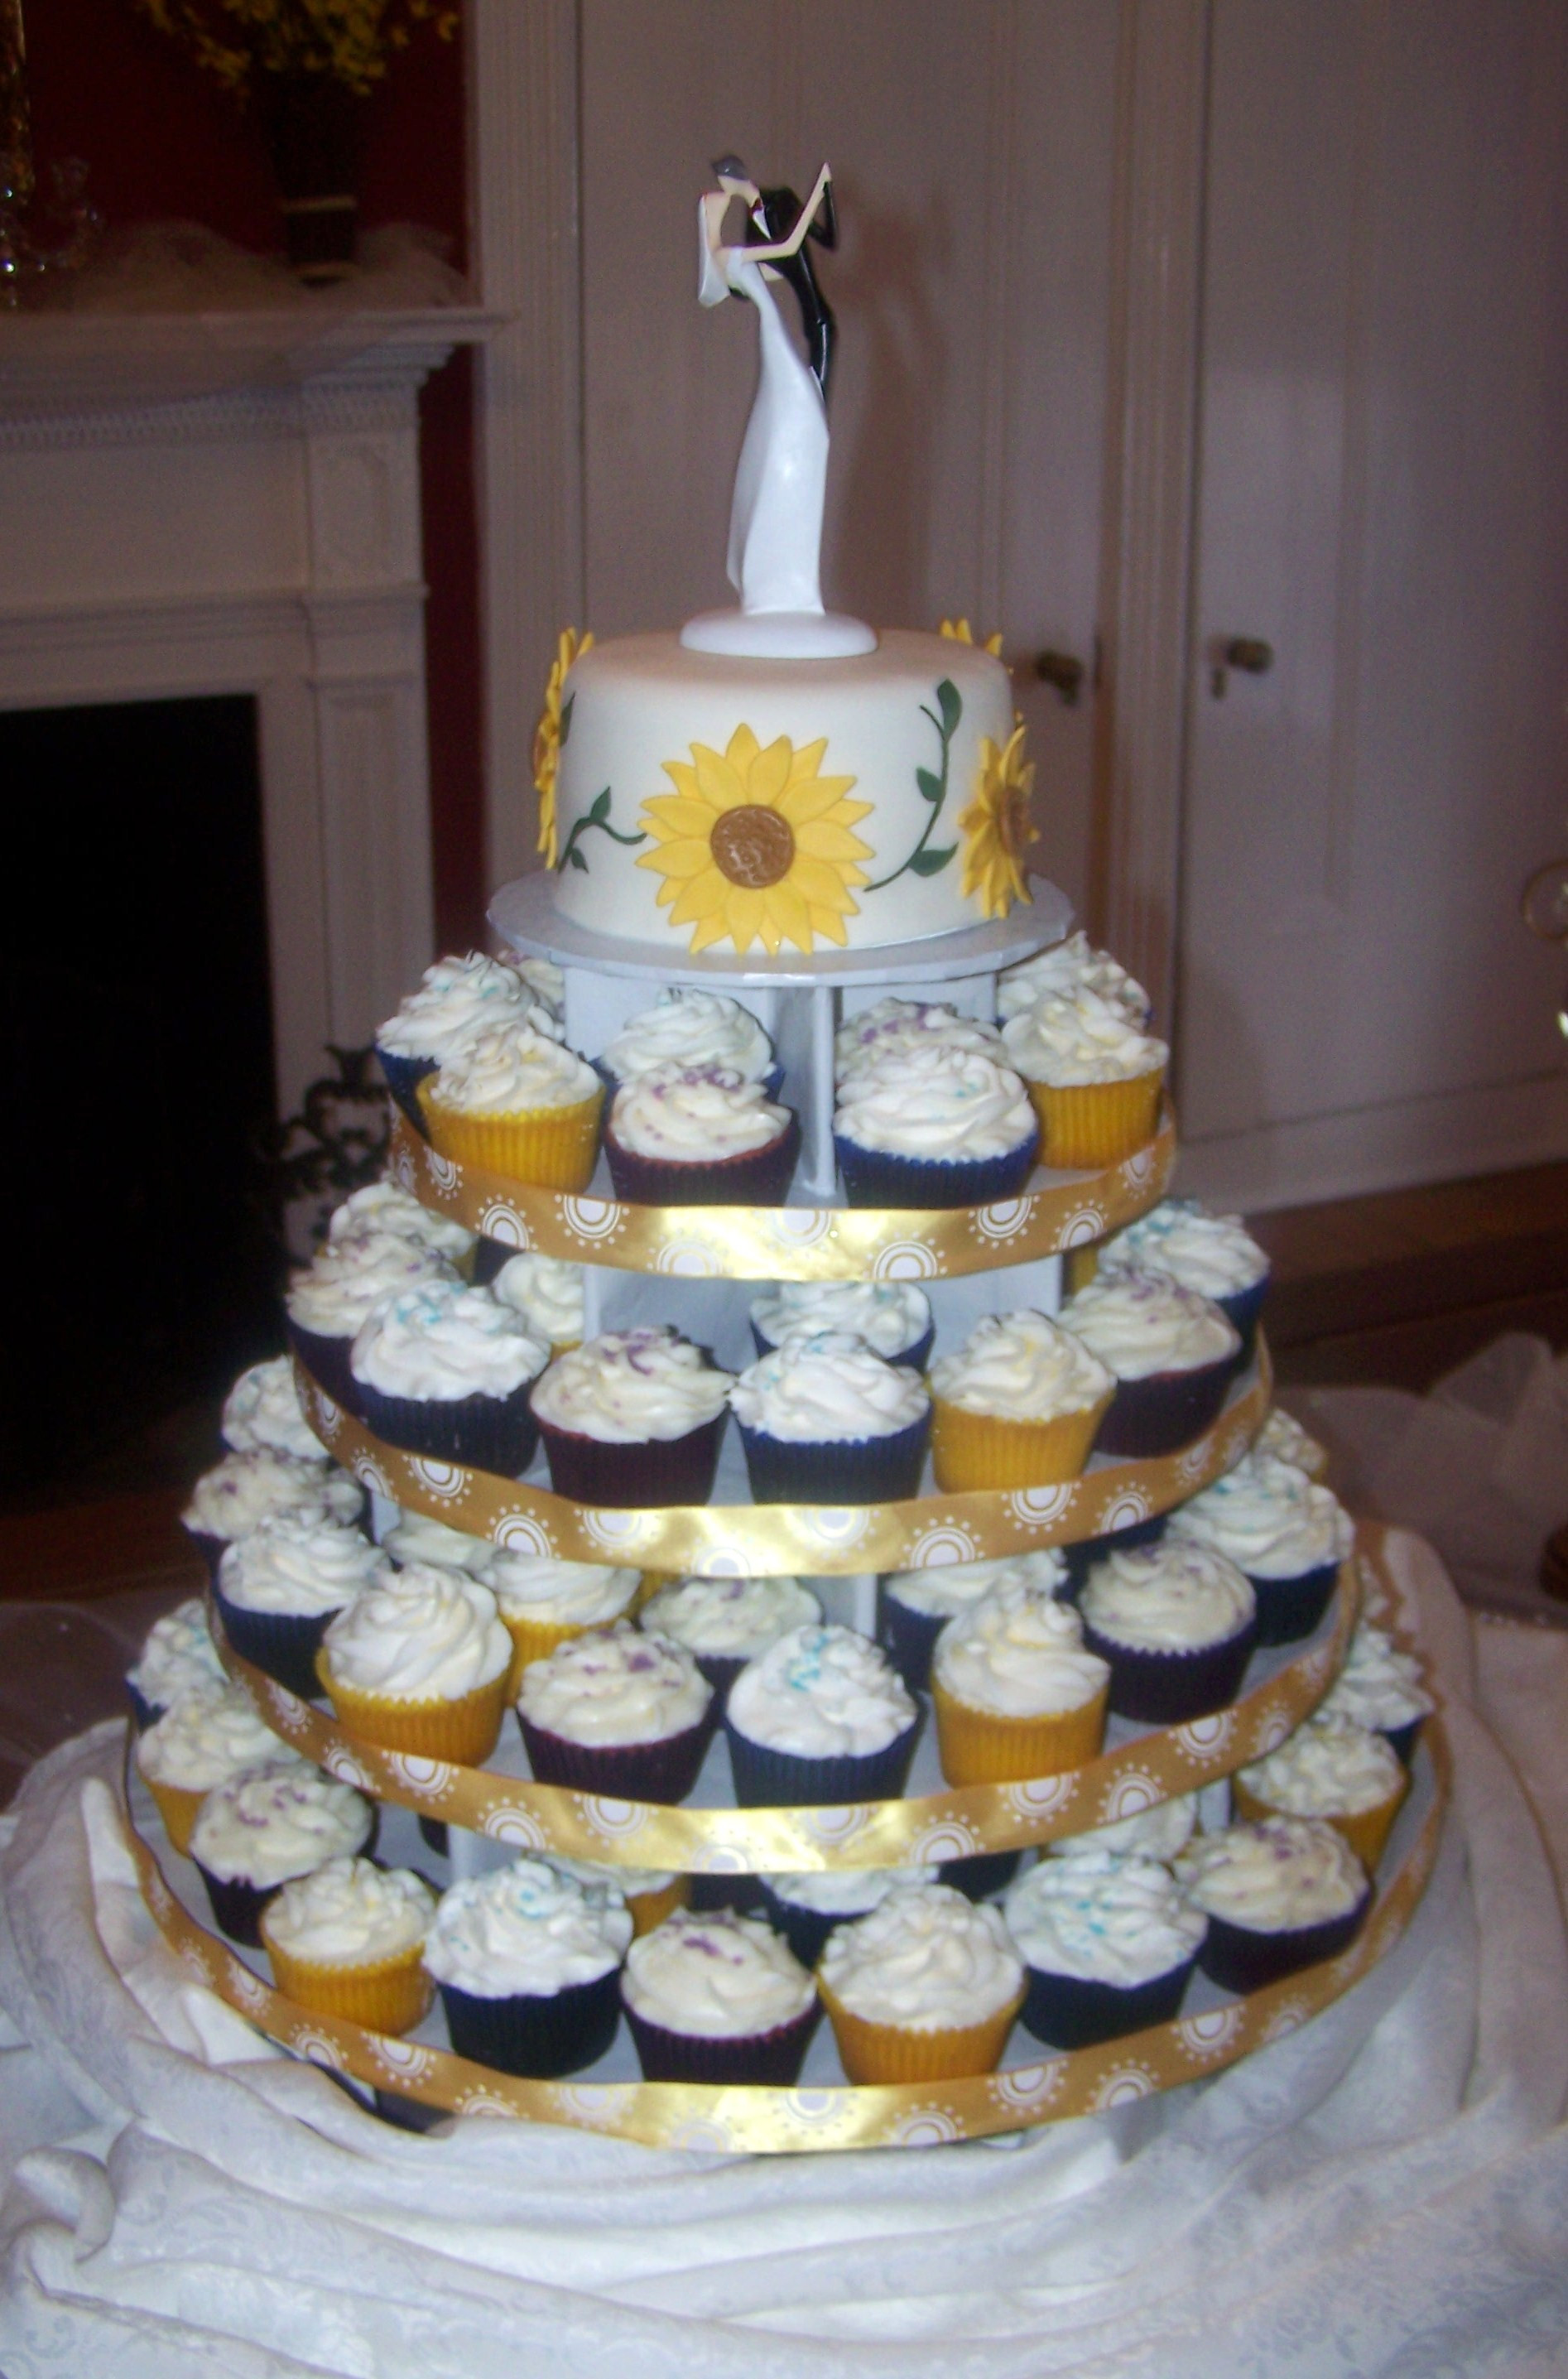 Wedding Cakes And Cup Cakes  Wedding Cakes & Groom's Cakes Beth Ann s